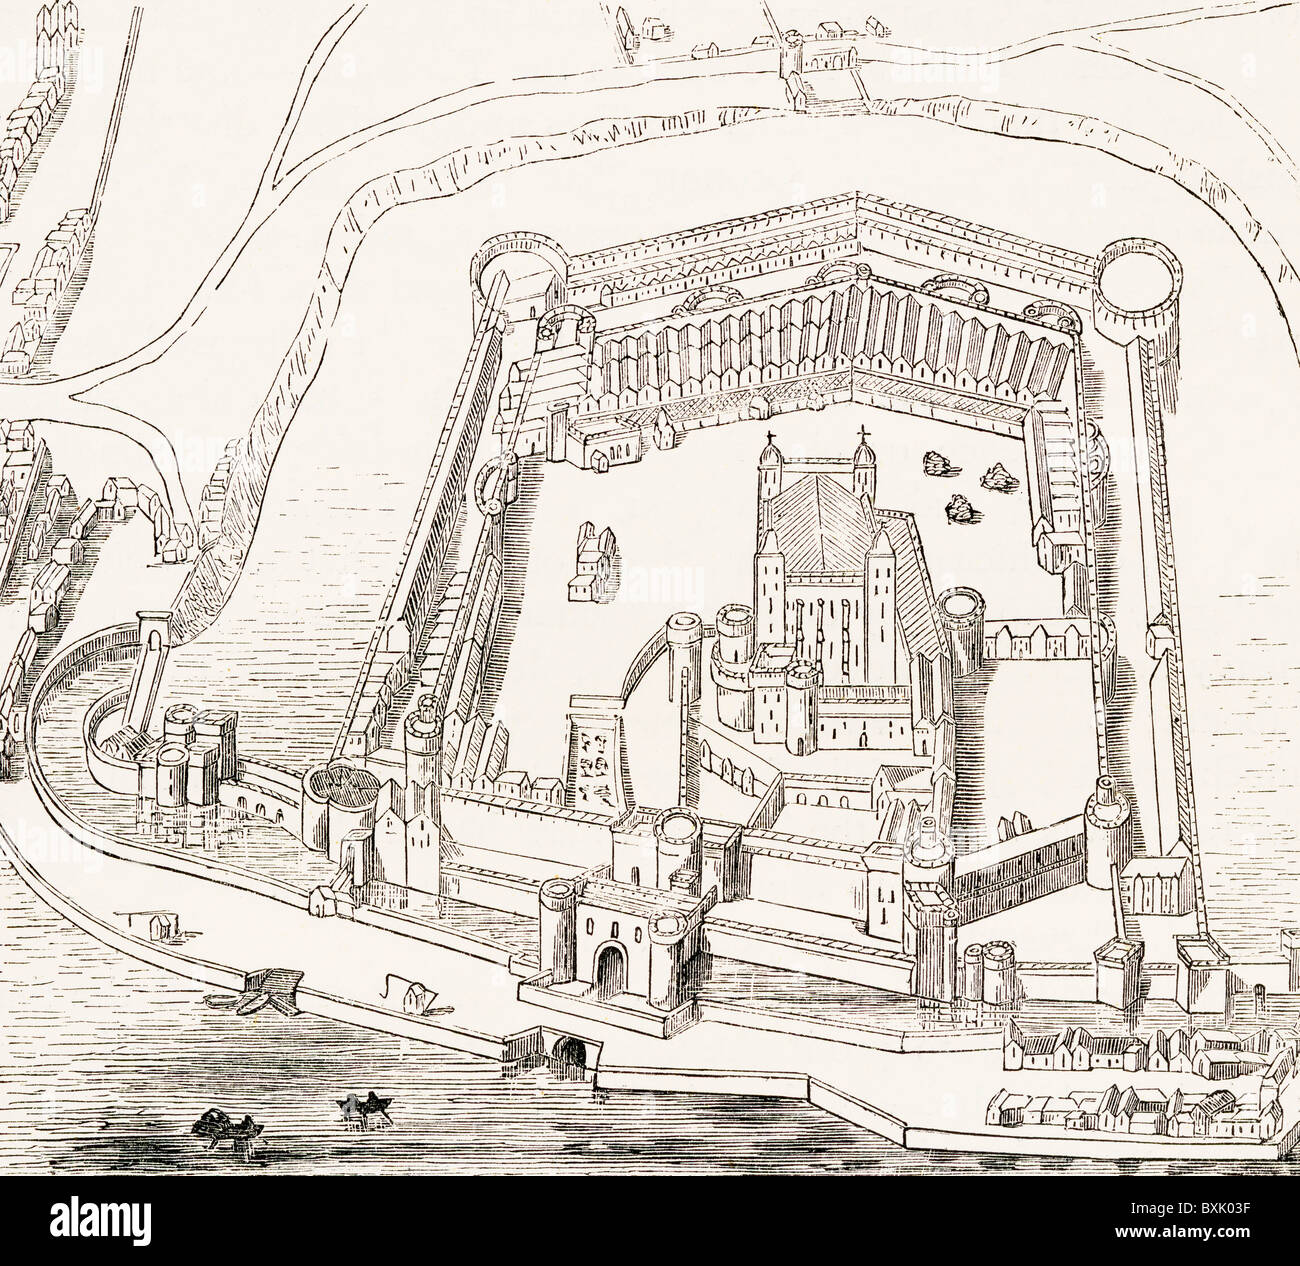 Birds-eye view of the Tower of London, England in the sixteenth century. - Stock Image